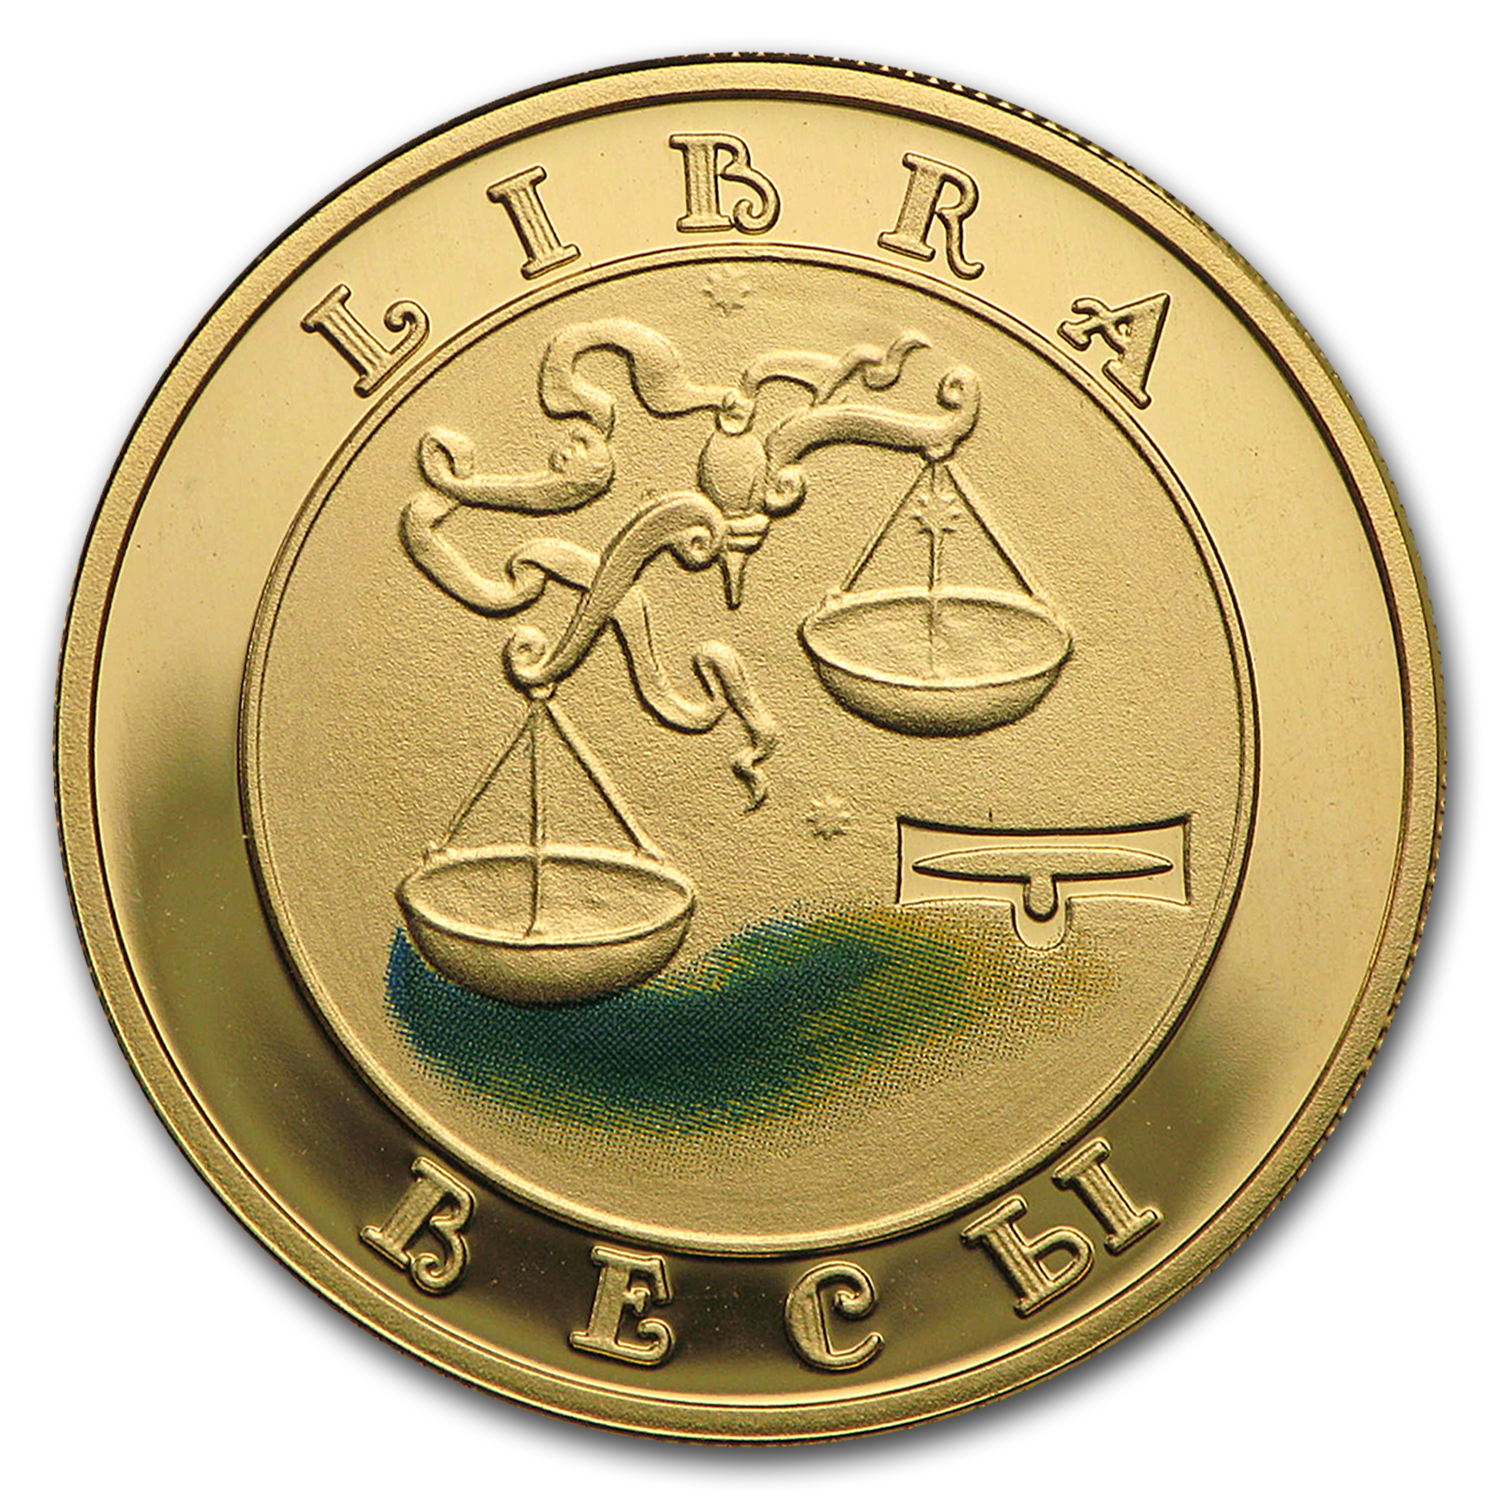 2008 Armenia Gold 10000 Drams Zodiac Series (Libra) BU